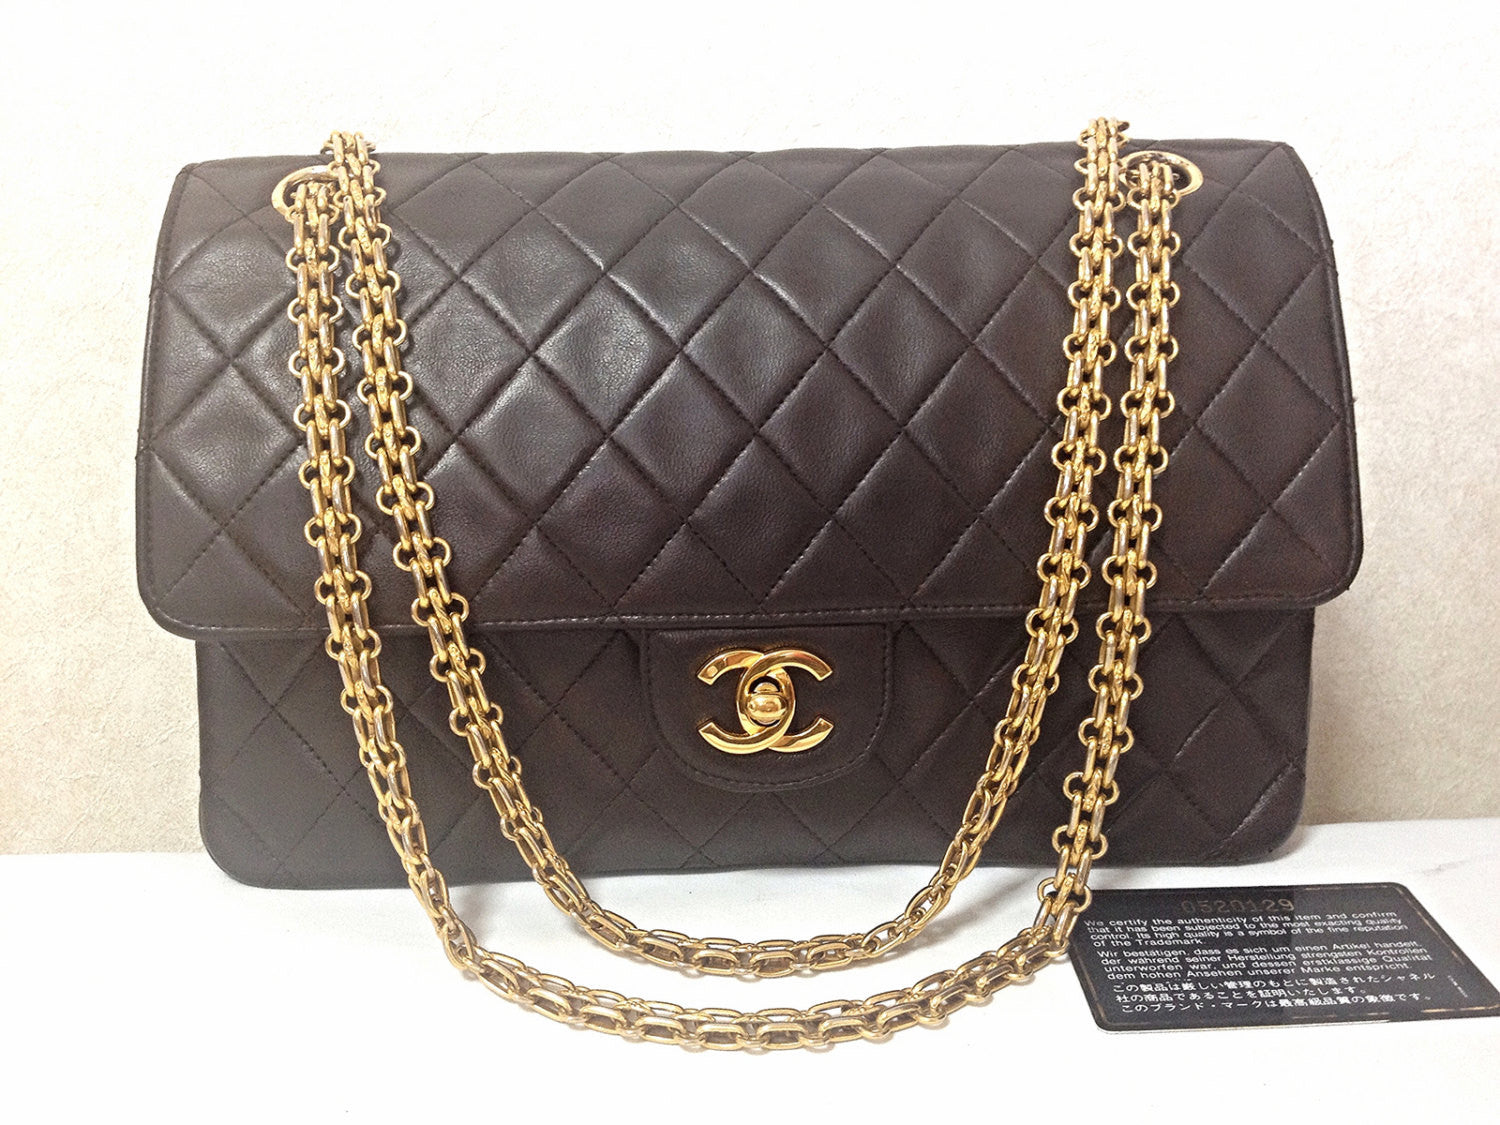 SOLD OUT: 80's vintage Chanel dark brown 2.55 classic double flap purse with golden CC motif closure and gold skinny chain straps.